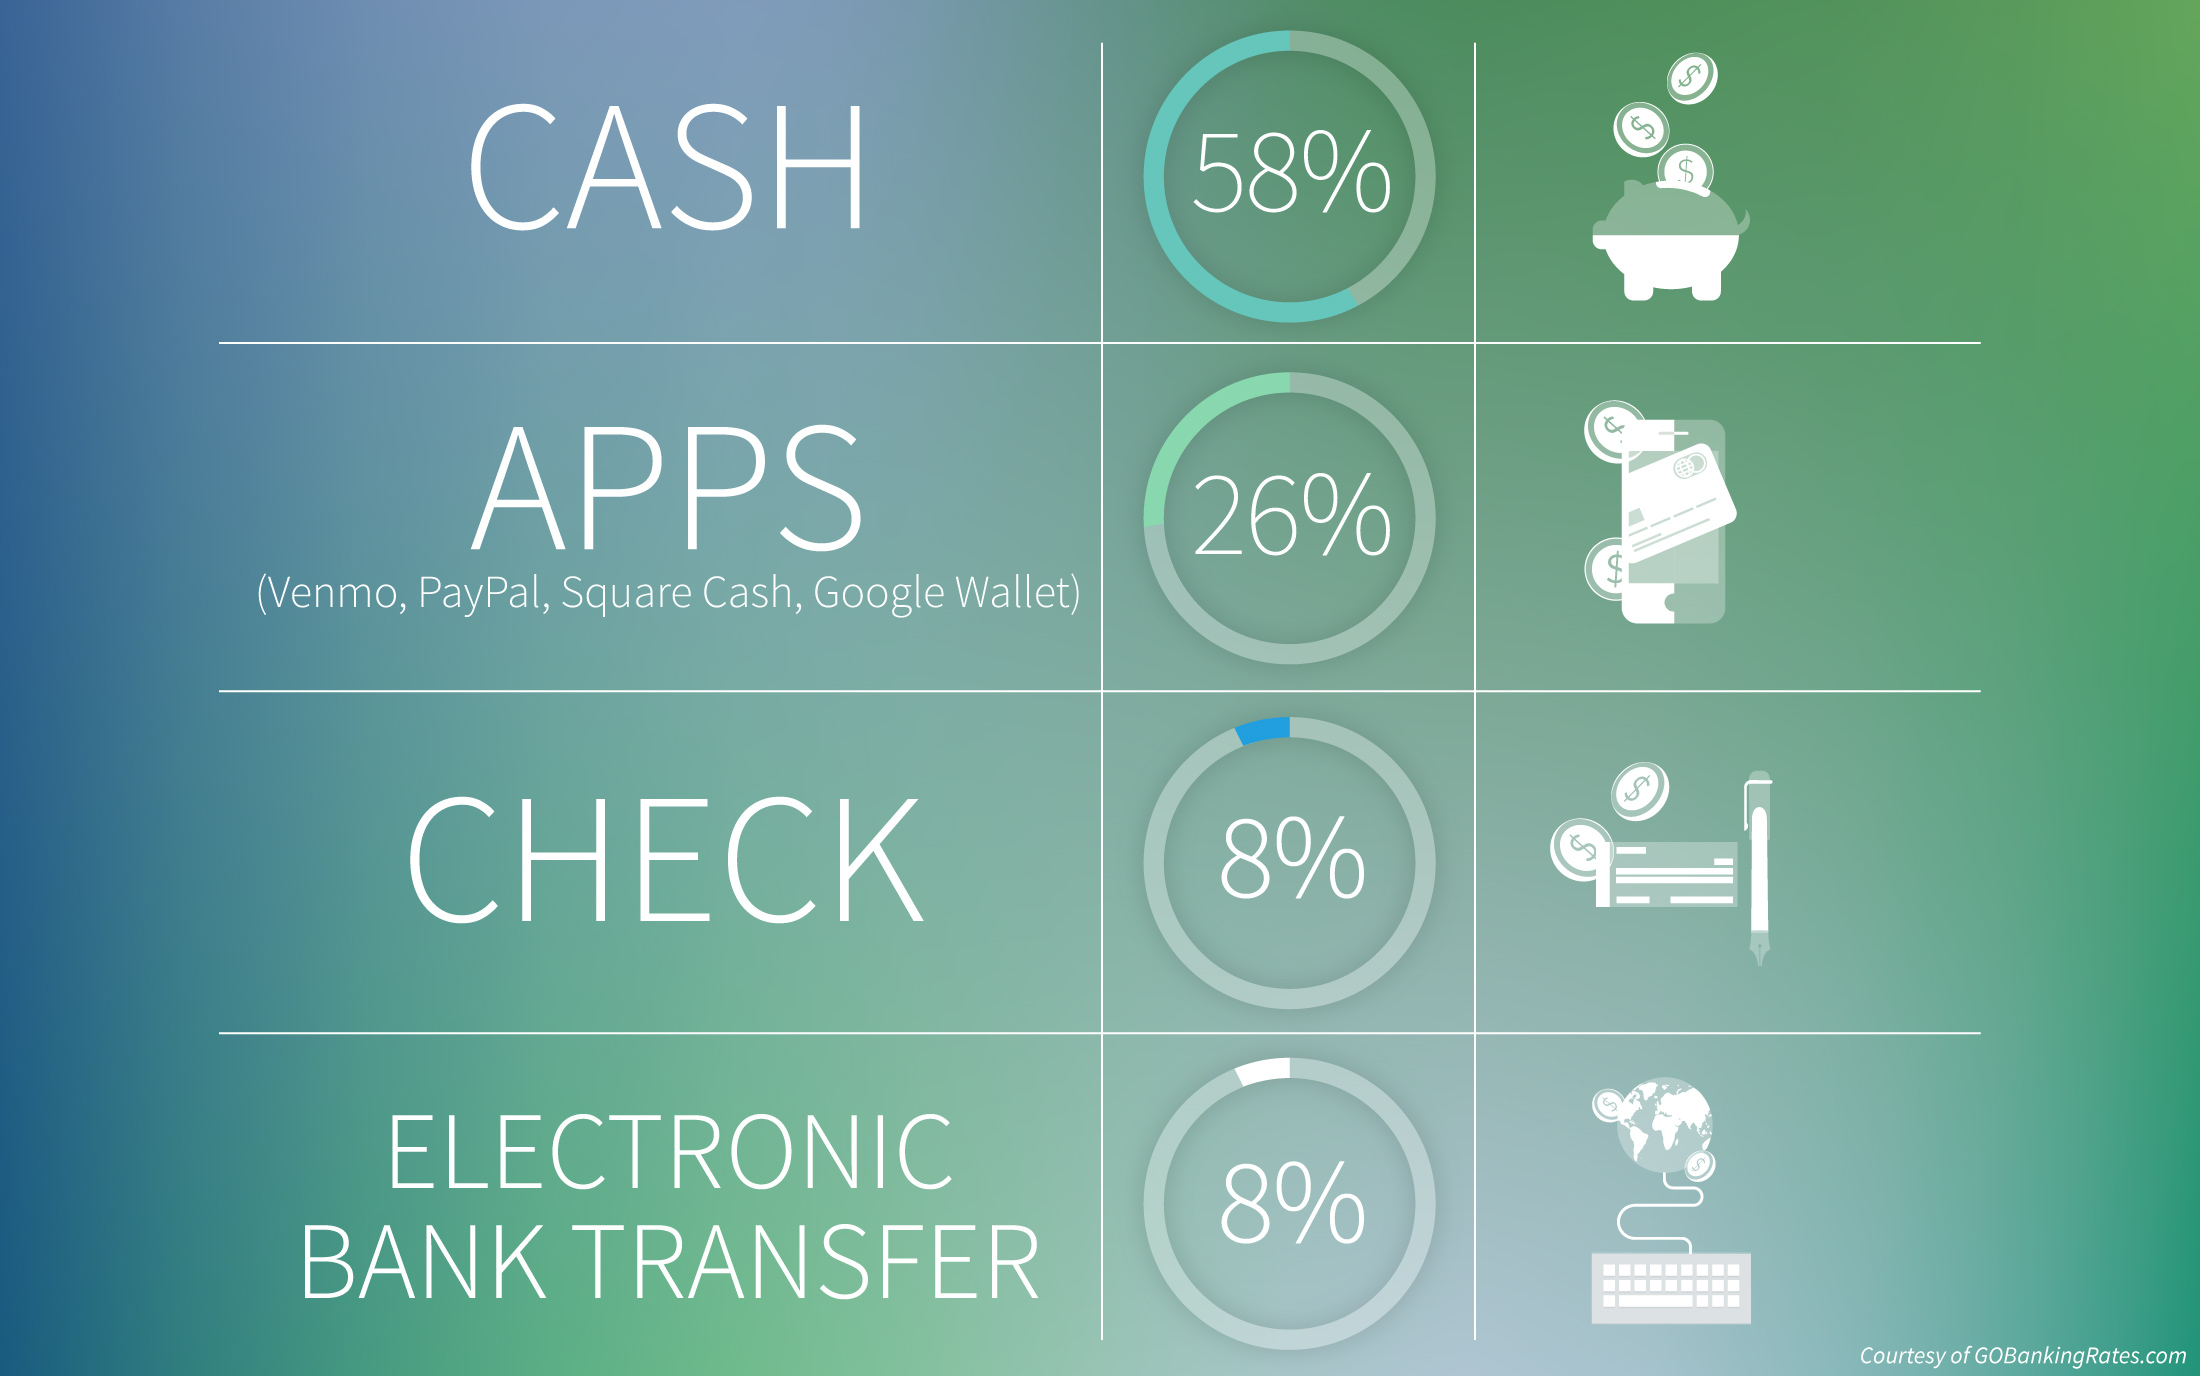 Survey: Millennials Prefer Cash to Other Payment Methods